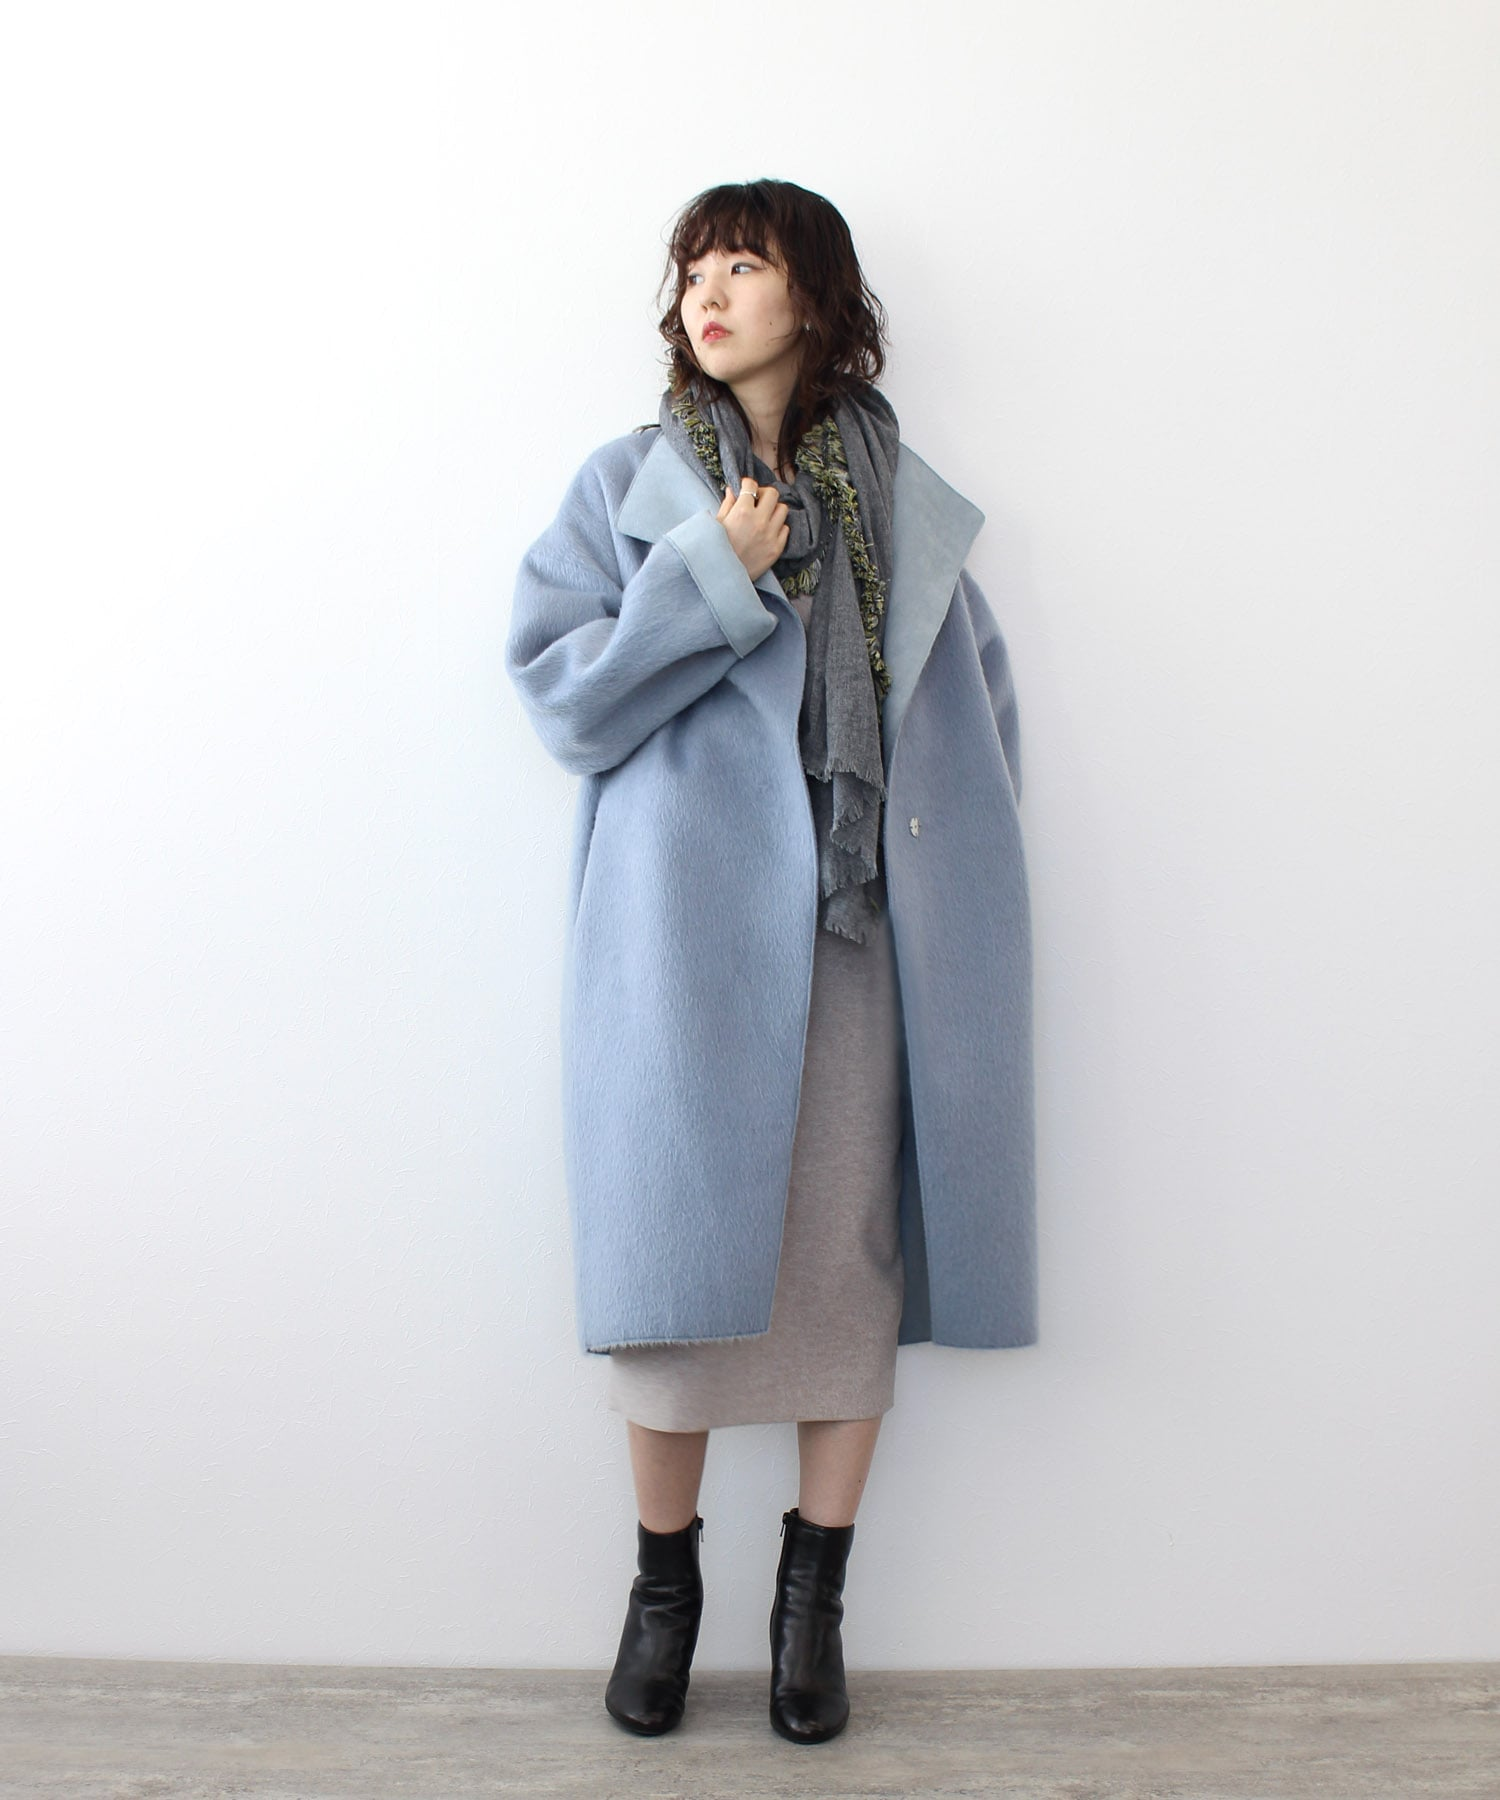 shaggy×suede bonding coat